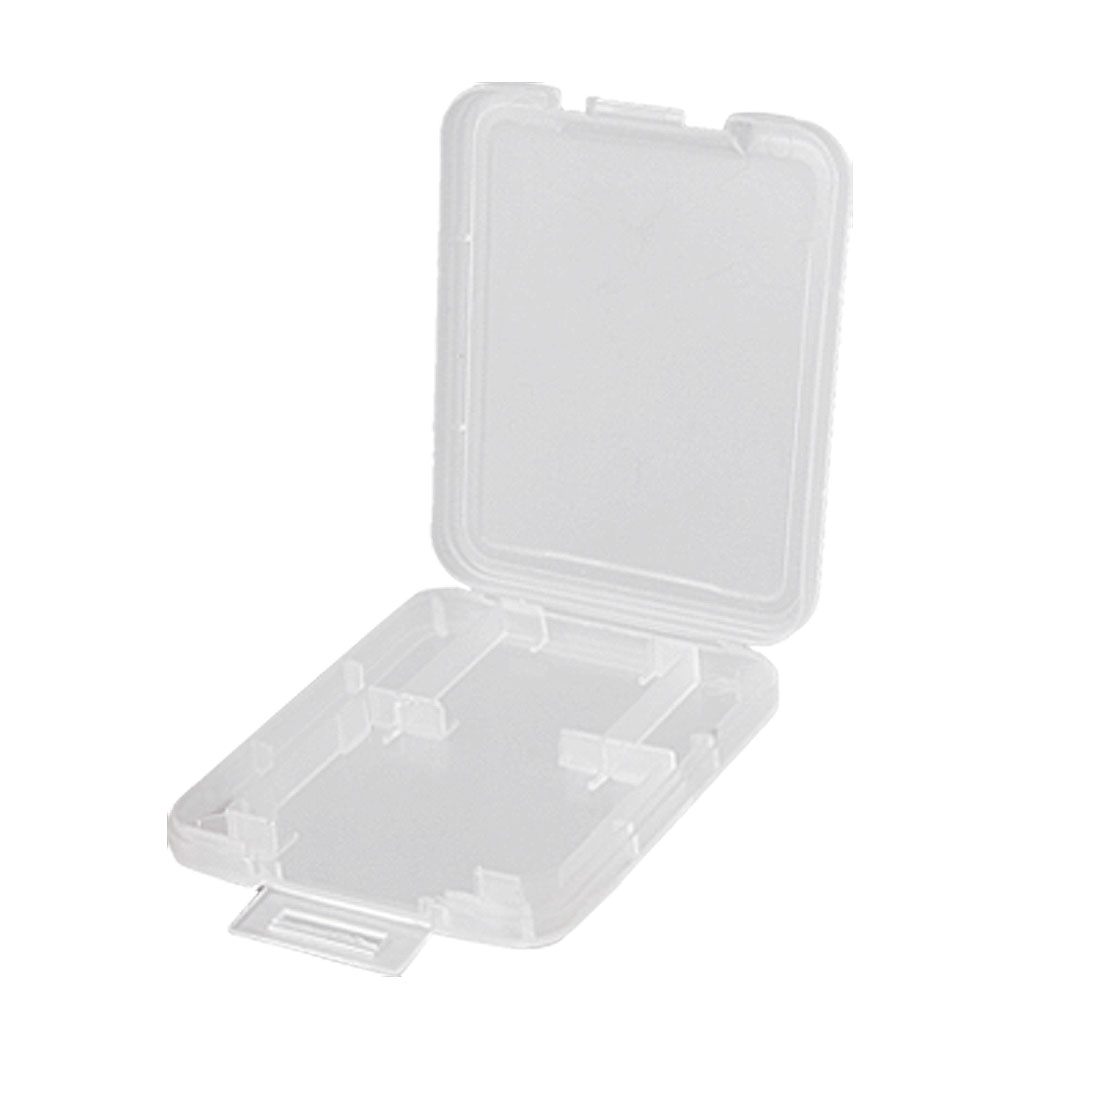 Clear Plastic Memory Storage Card Holder Case for Mini SD